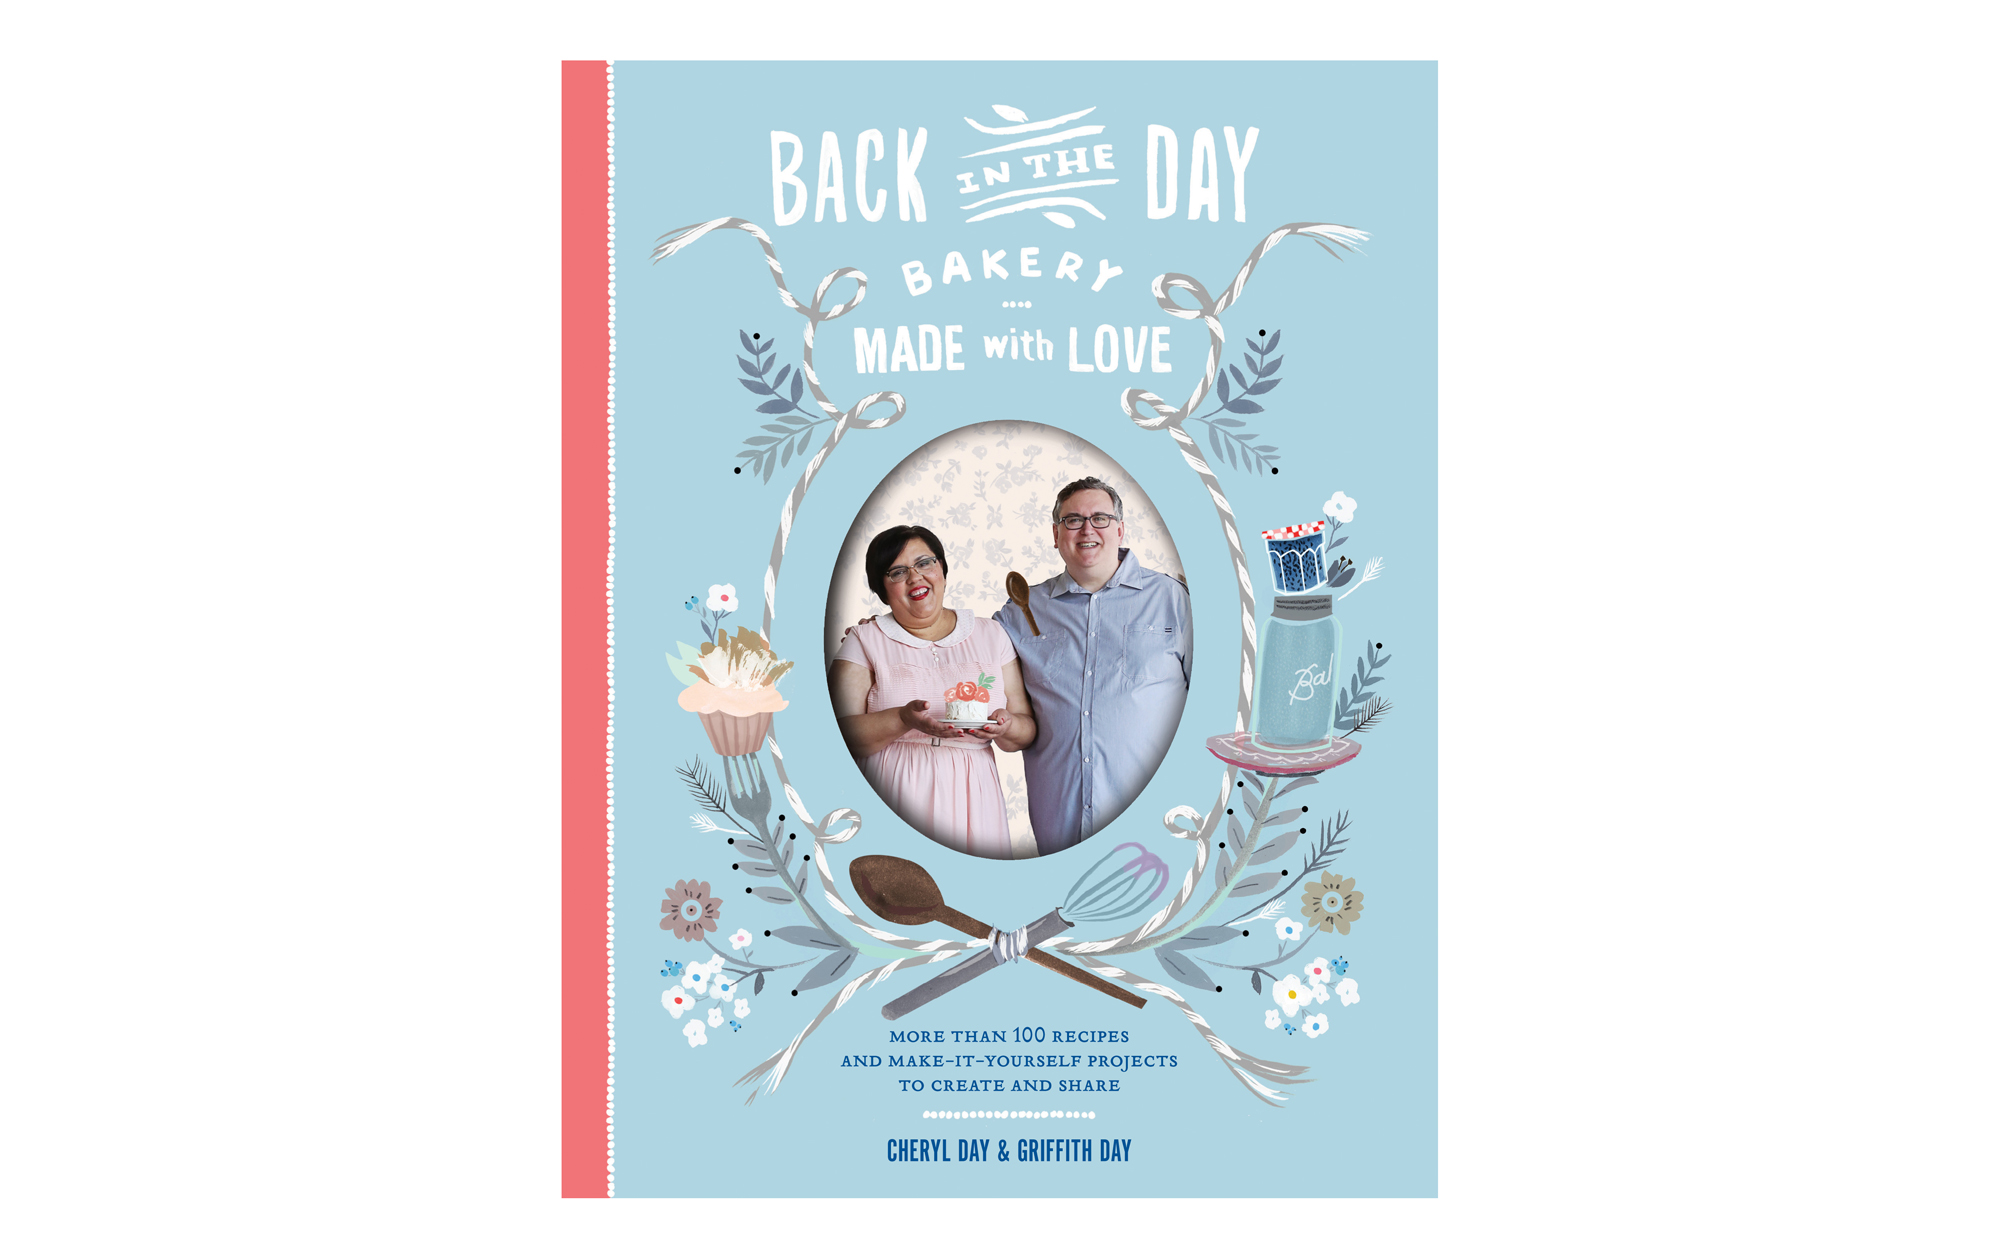 Back in the Day Bakery Made with Love: More than 100 Recipes and Make-It-Yourself Projects to Create and Share, by Cheryl Day and Griffith Day